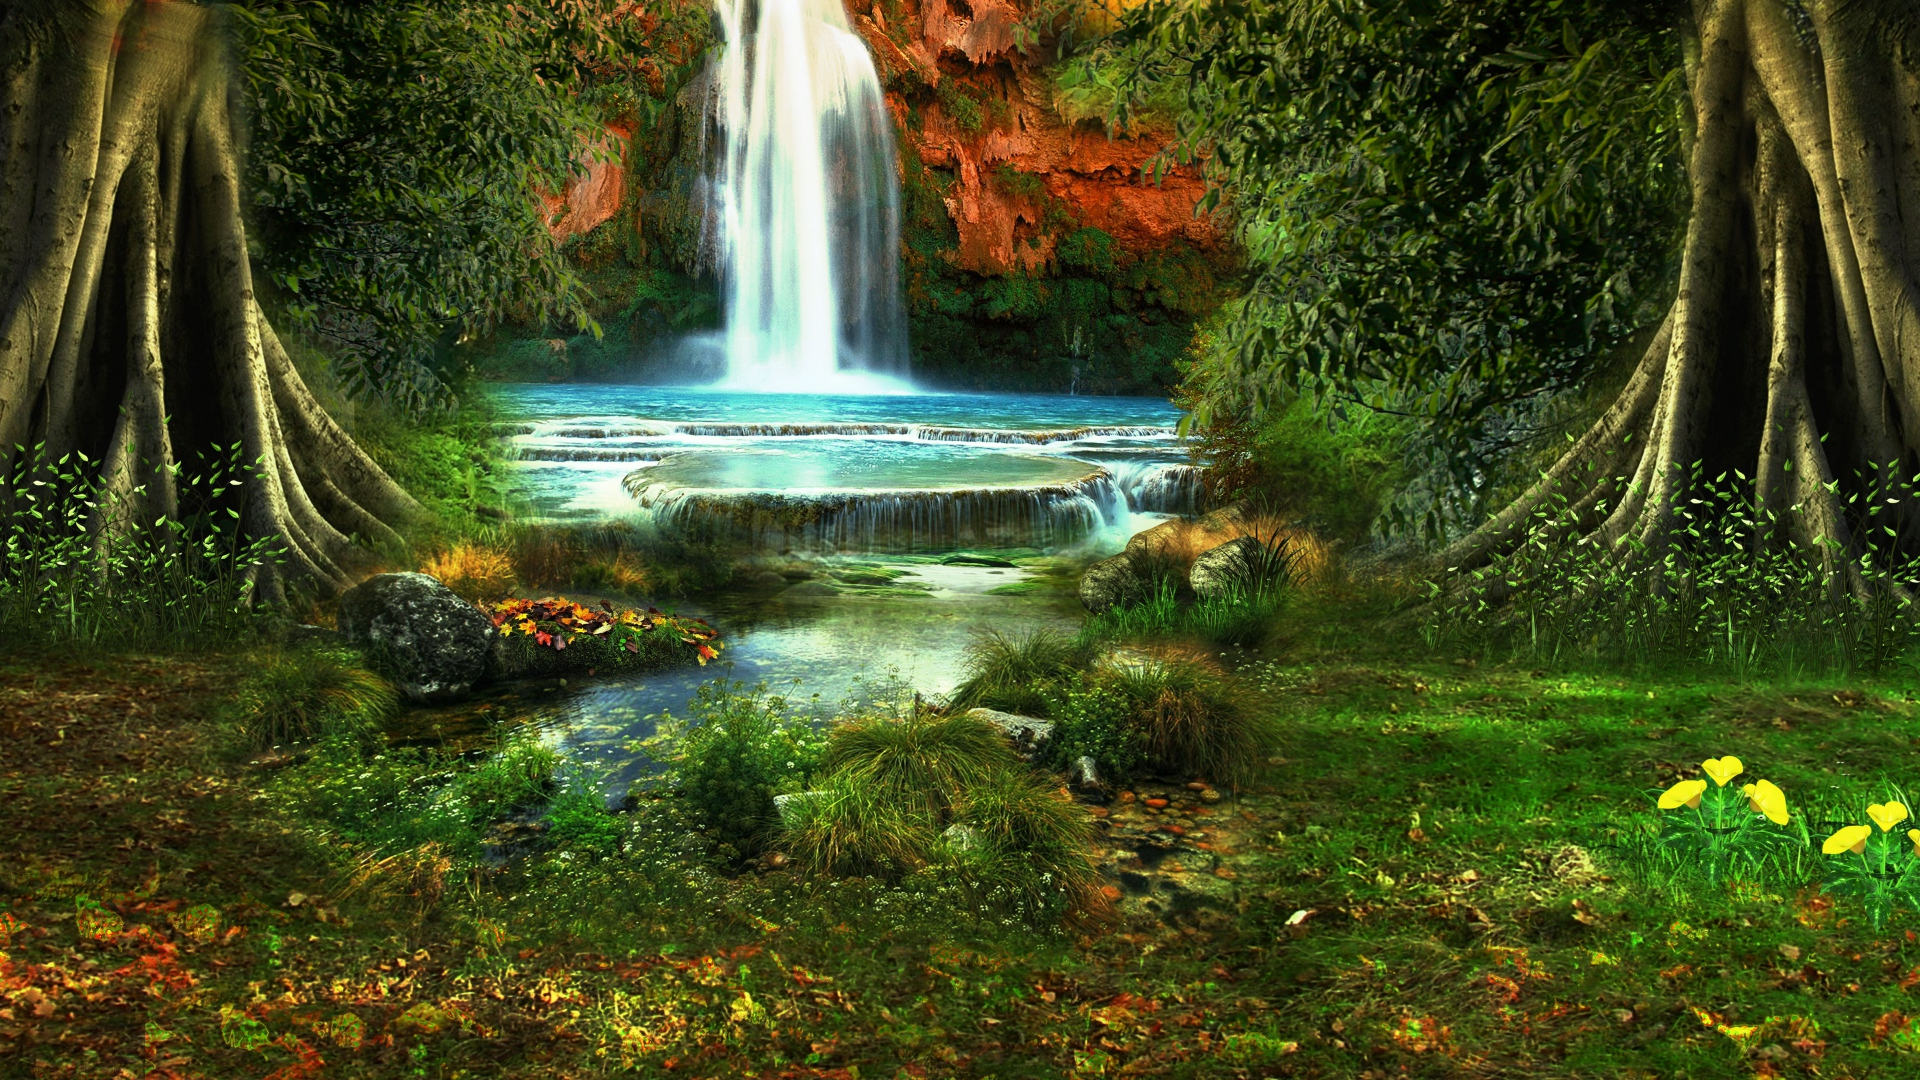 1920x1080 Hd Wallpapers Waterfall: Waterfall Wallpapers, Pictures, Images